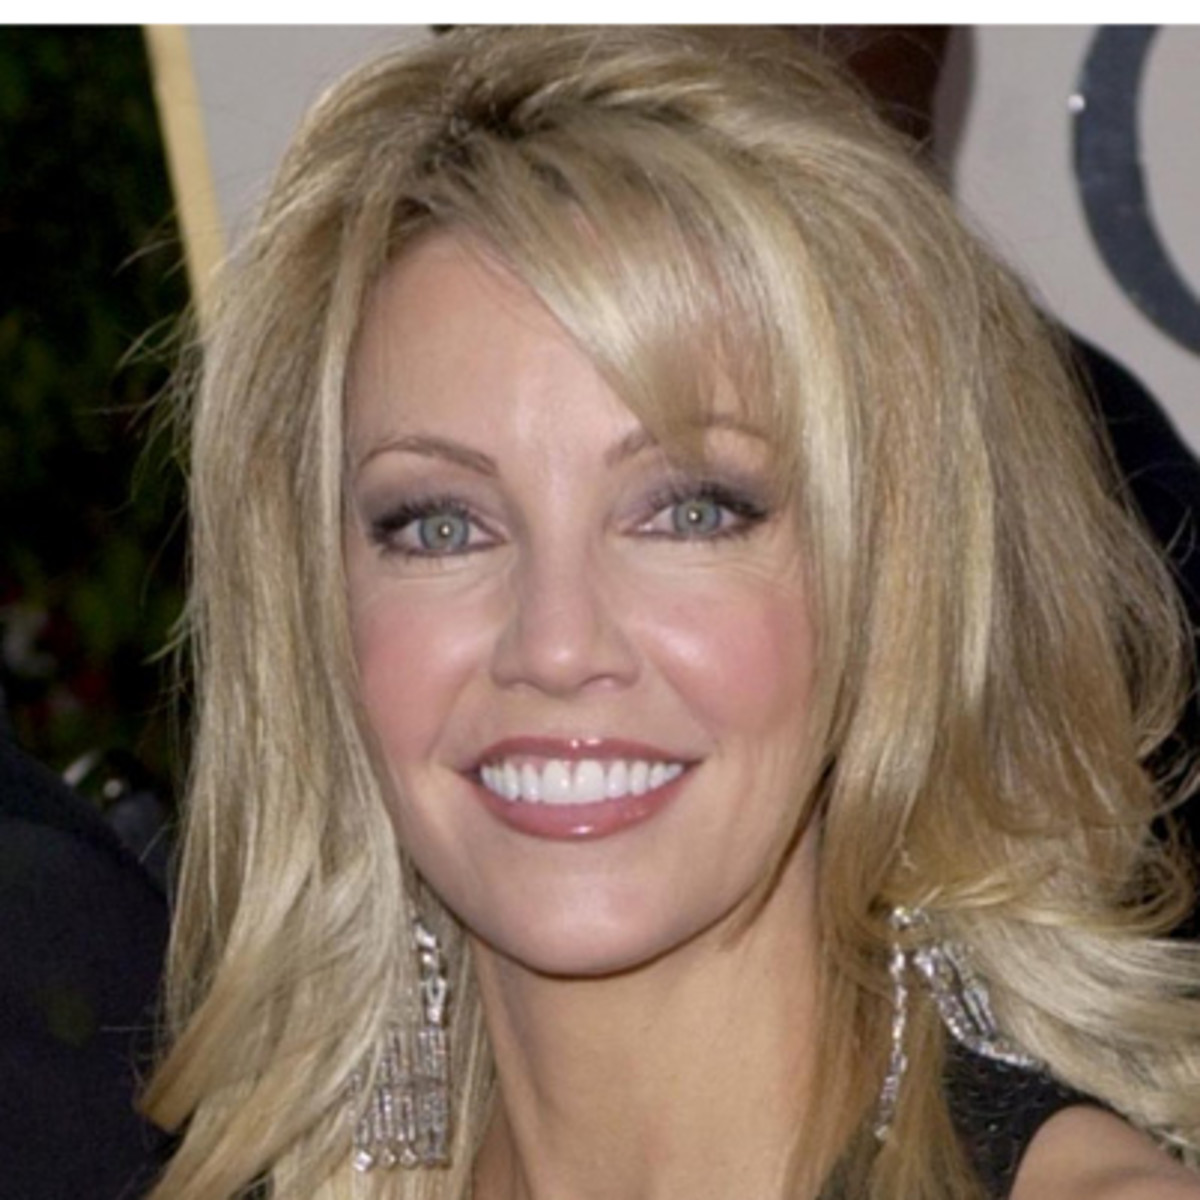 Famous People Named Ava in heather locklear - classic pin-ups, actress, television actress